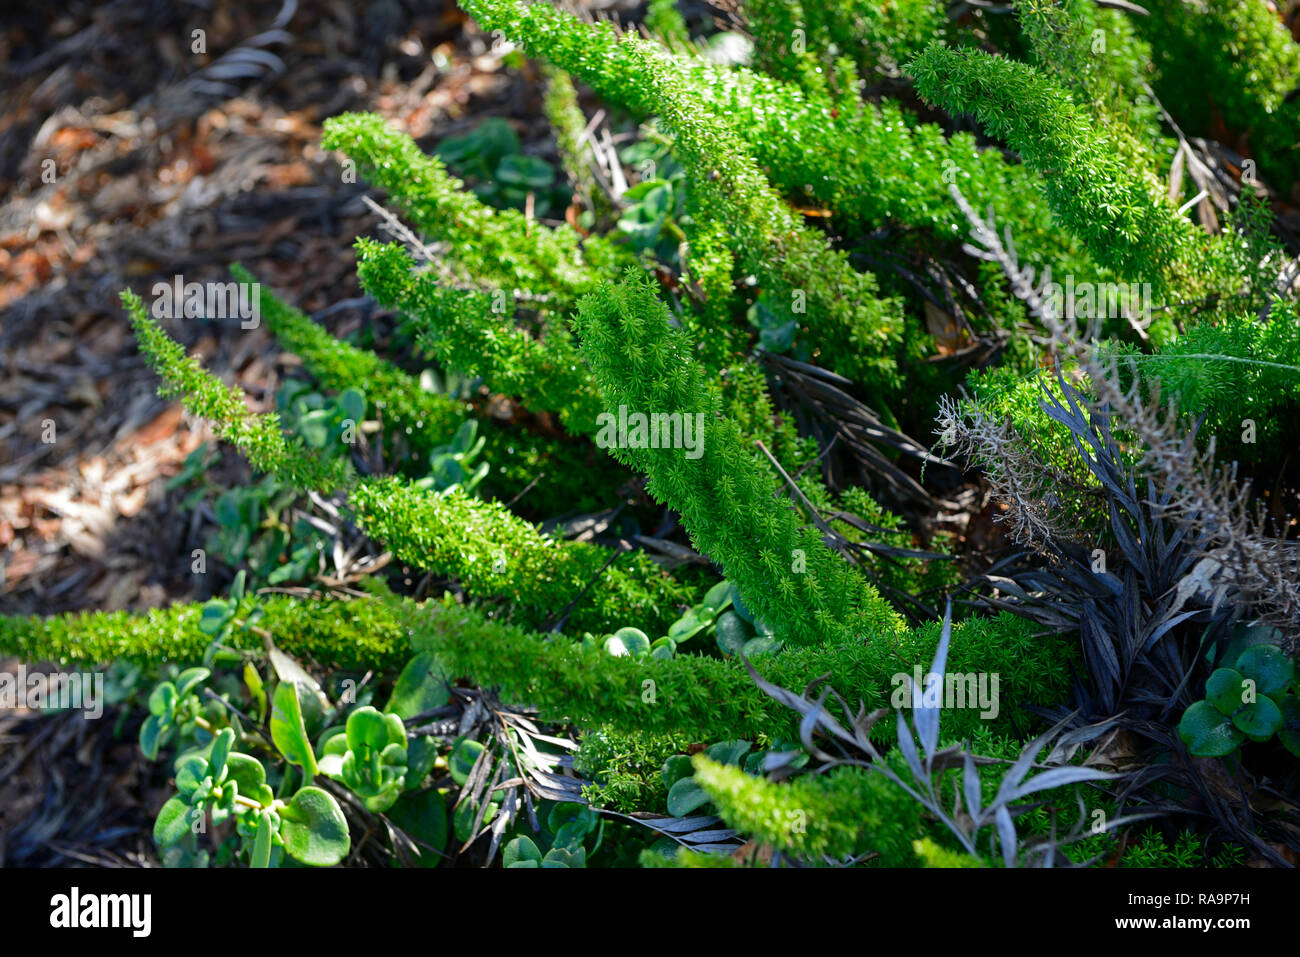 Asparagus densiflorus Myersii,plume asparagus,foxtail fern,green plumes,tuberous evergreen perennial,RM Floral - Stock Image